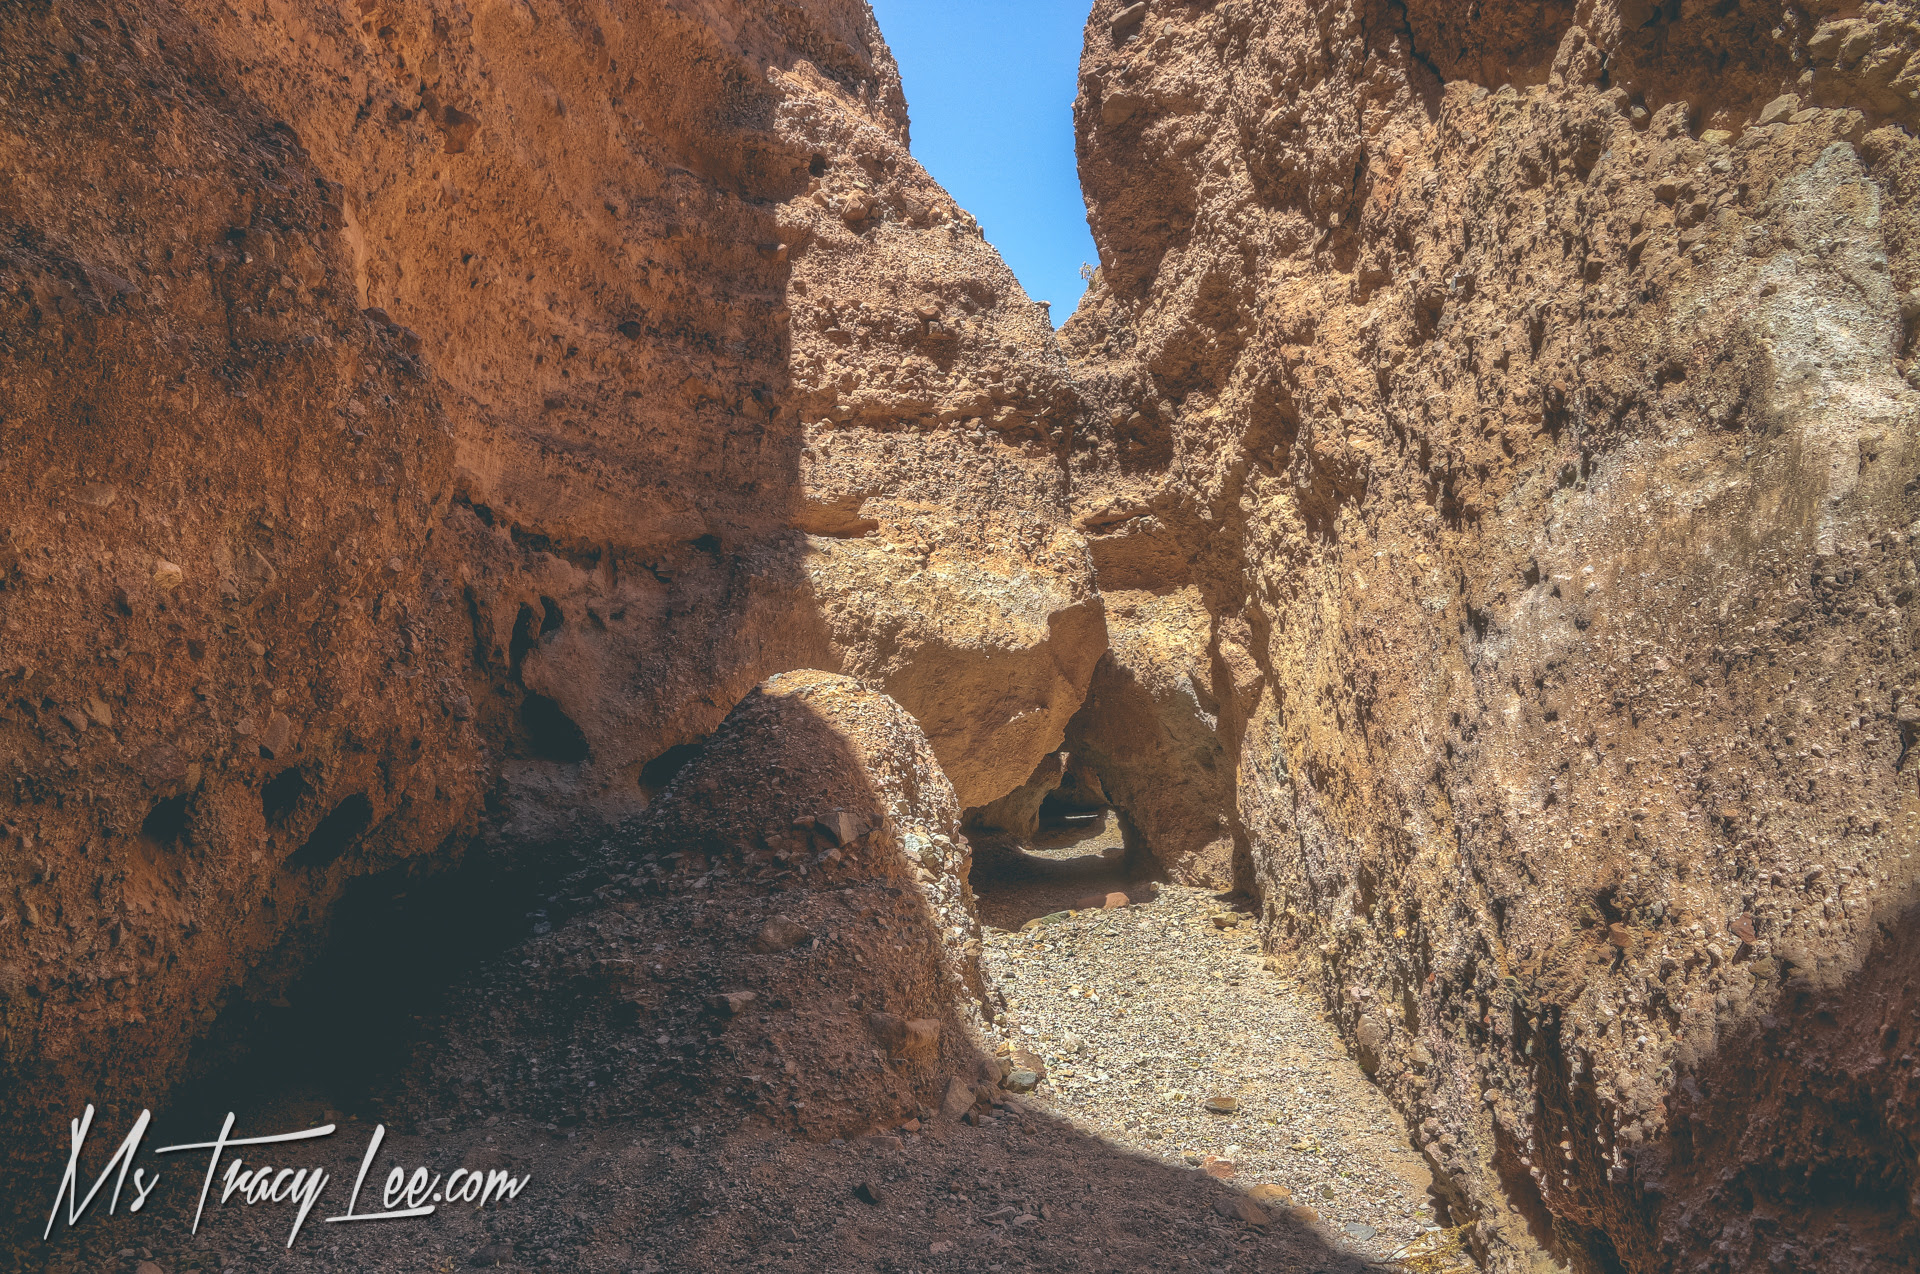 Private Kanarra Falls Slot Canyon Adventure from Las Vegas cancellation policy: For a full refund, cancel at least 24 hours in advance of the start date of the experience.Discover and book Private Kanarra Falls Slot Canyon Adventure from Las Vegas on Tripadvisor5/5(1).